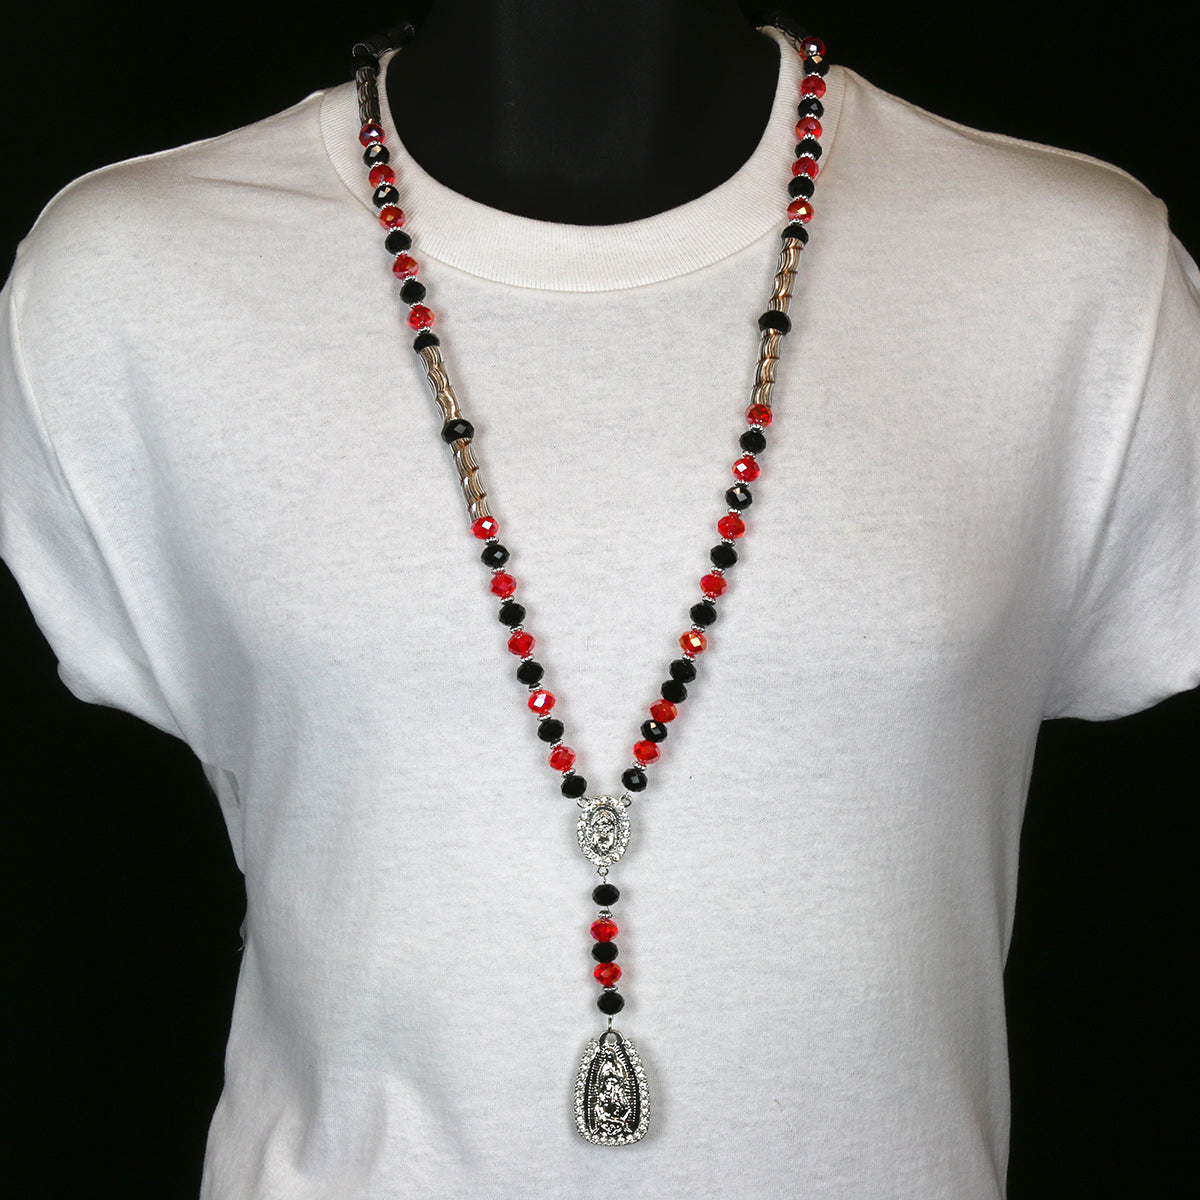 8MM Black/Clear Red Crystal Rosary Jesus Medal & Guadalupe Pendants